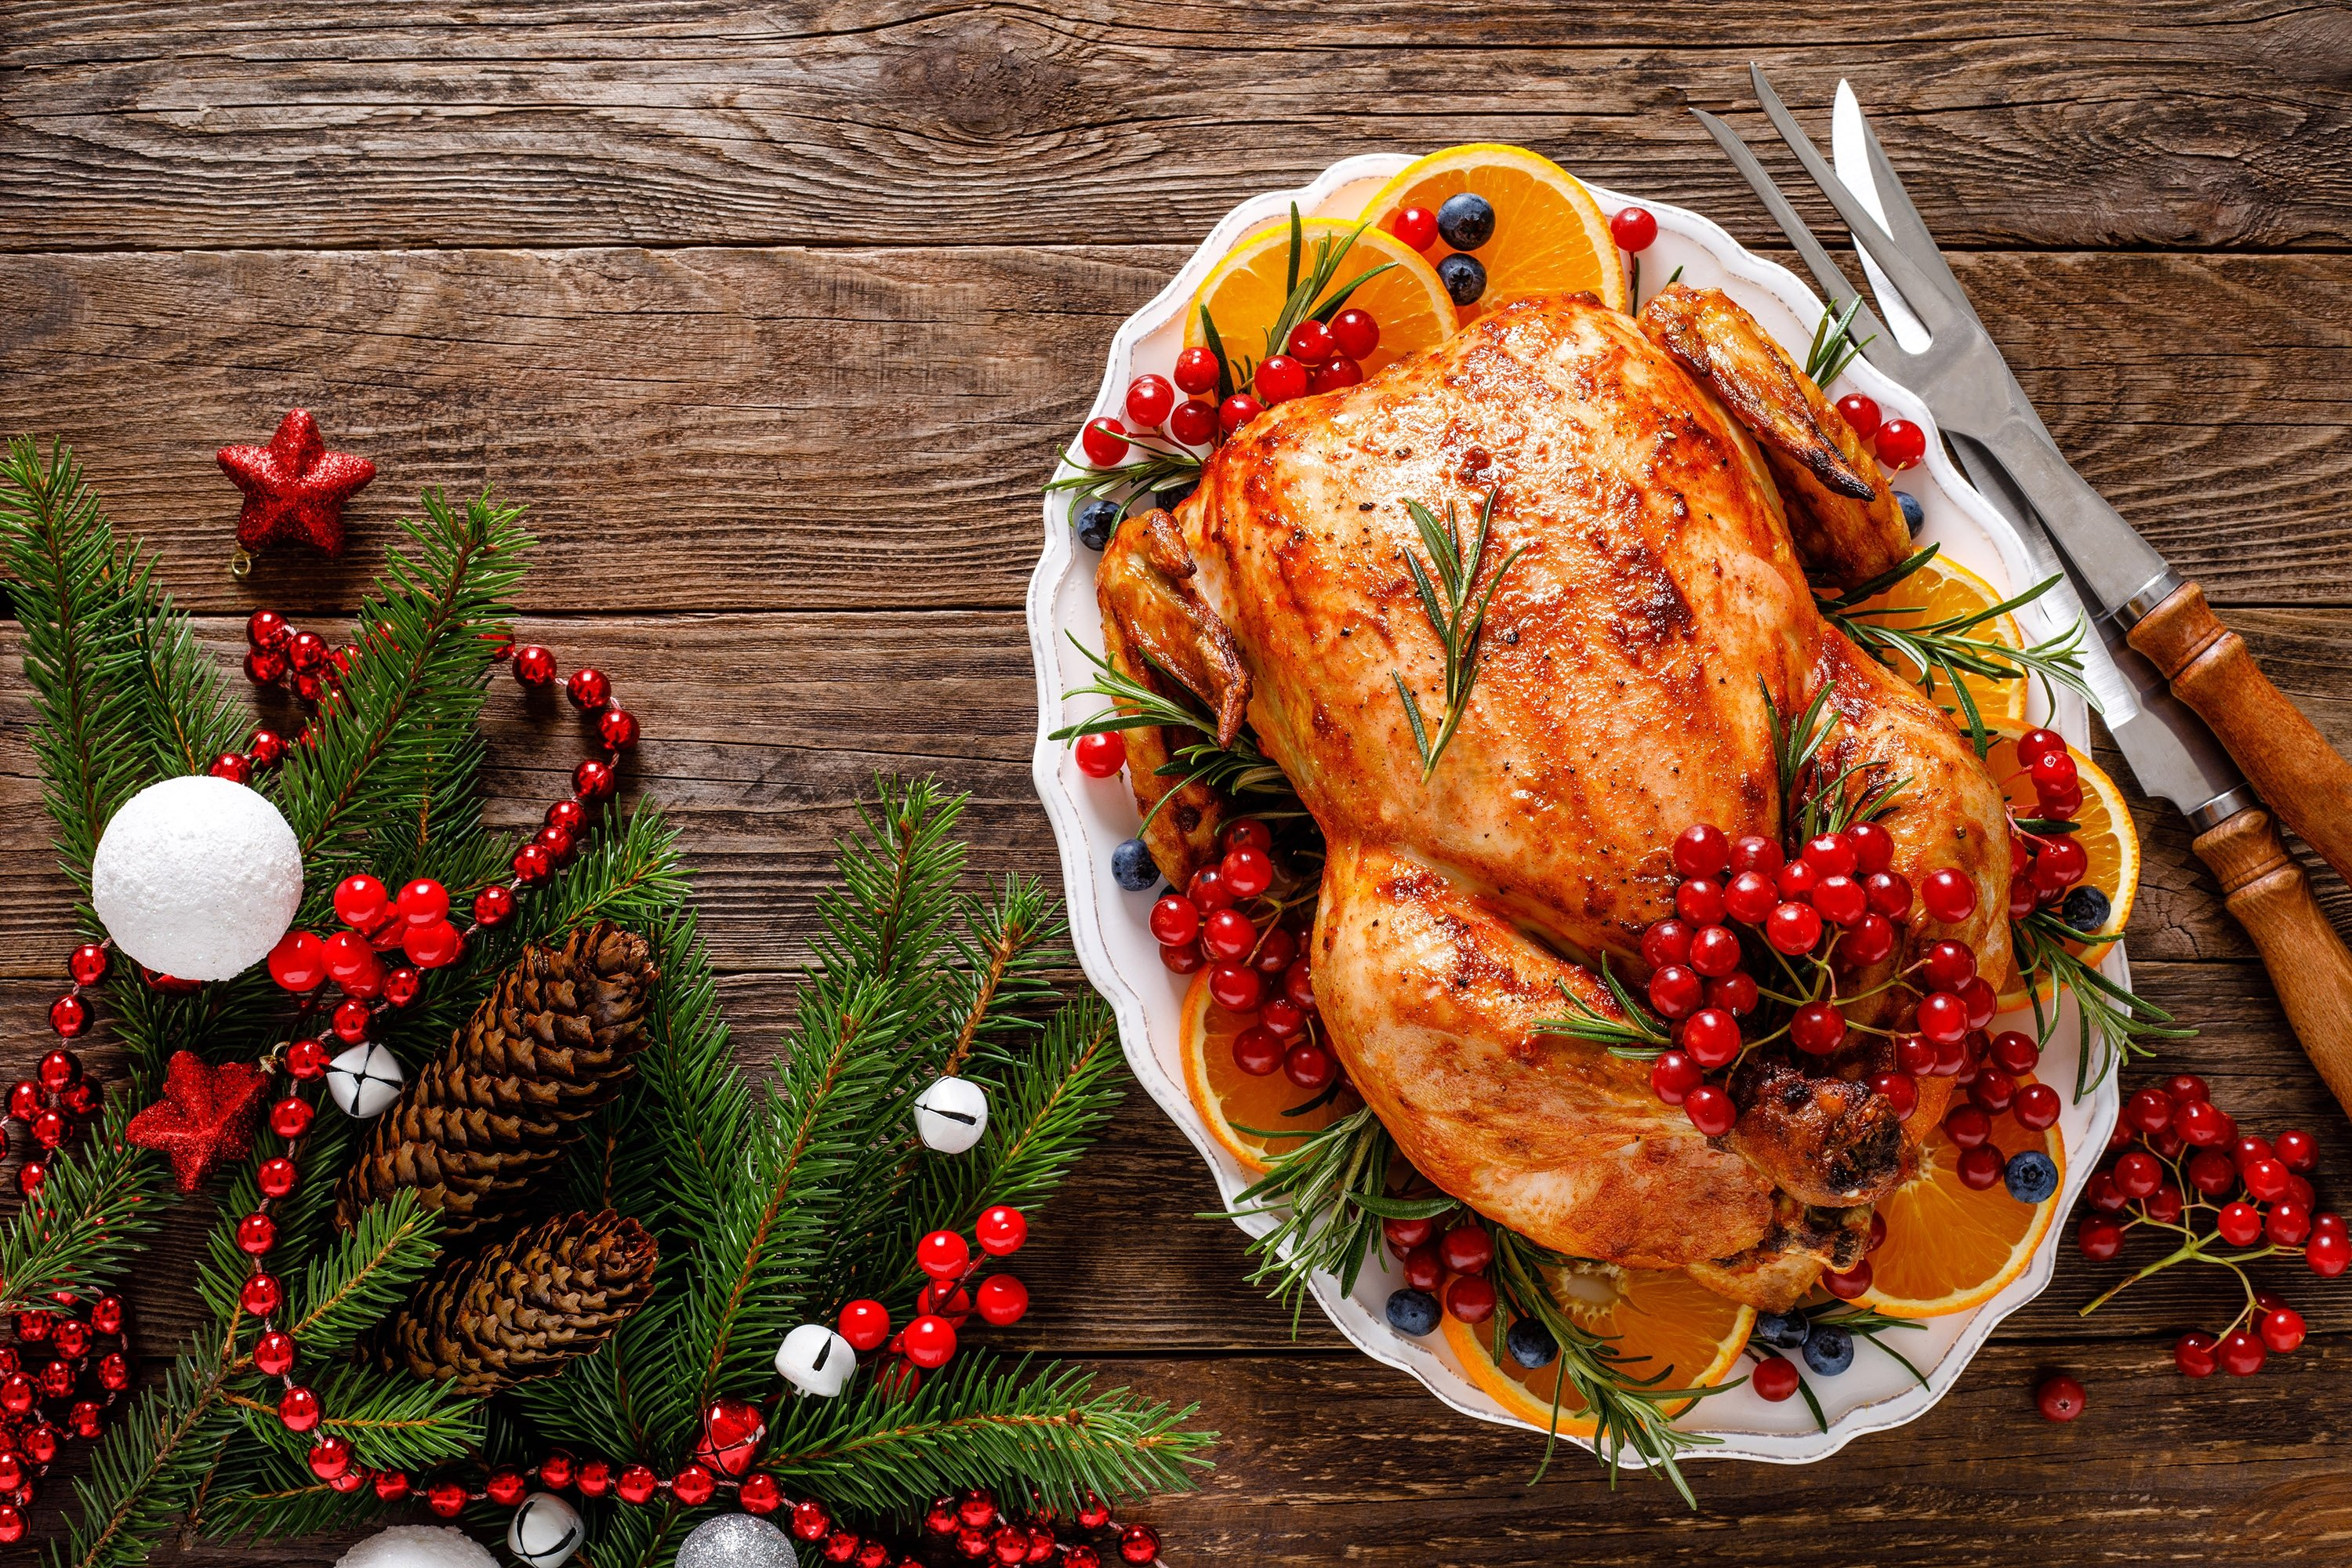 A traditional Christmas dinner calls for a whole Turkey. (Shutterstock Photo)